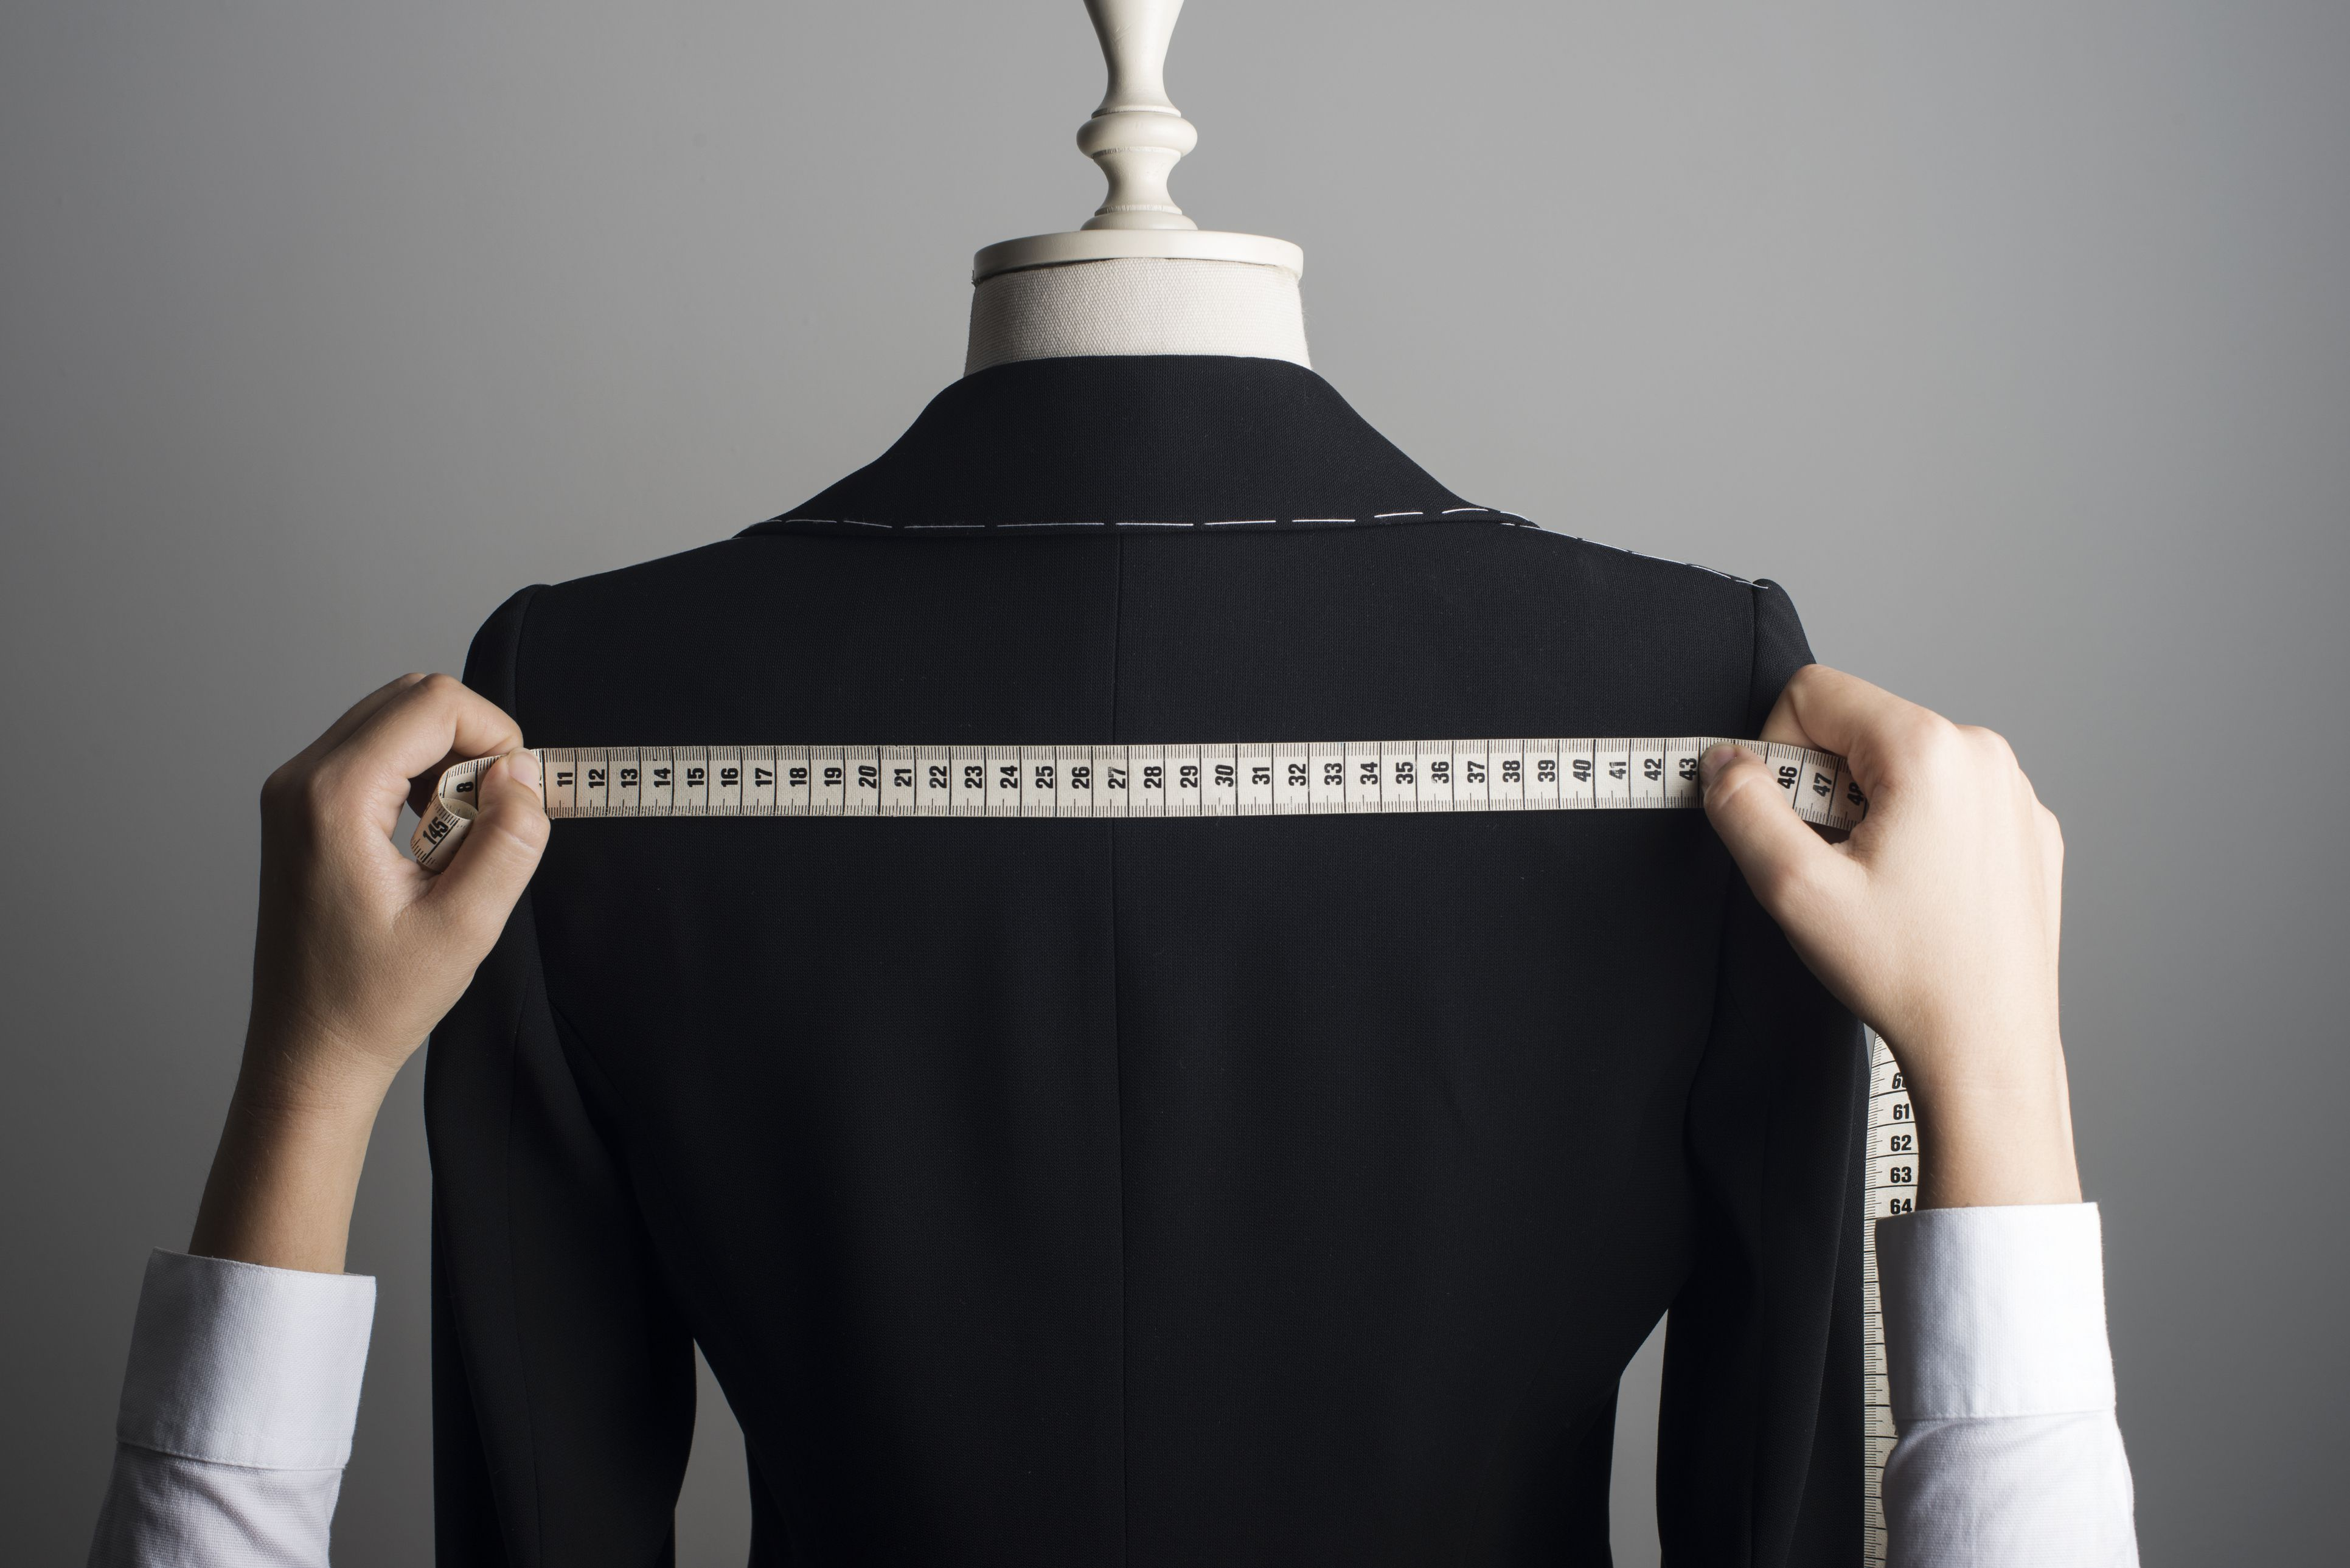 learn how to successfully sell clothing on ebay